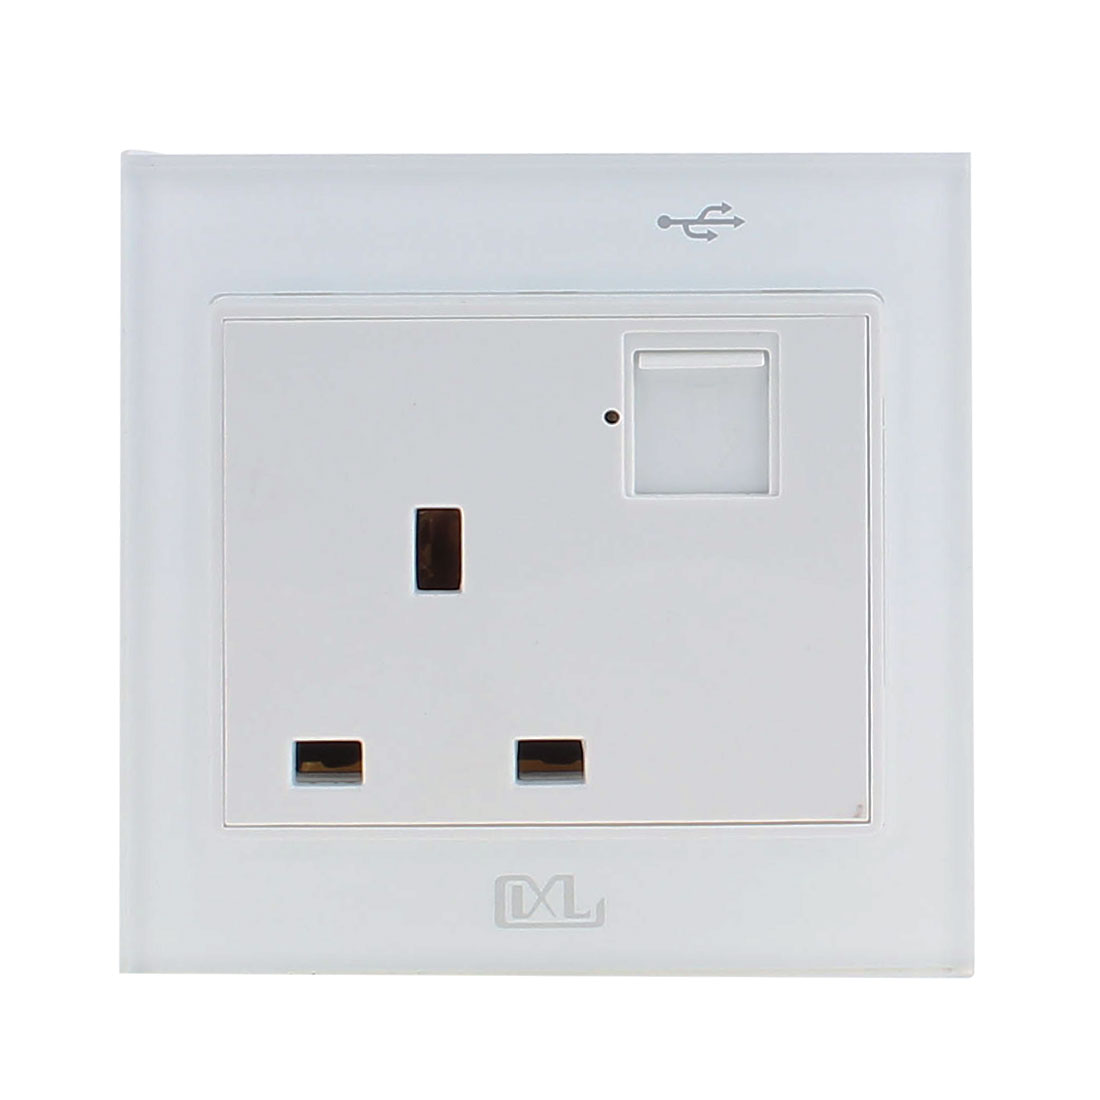 Double AC 110V-250V UK Socket 2 USB Port 5VDC 2100mA Charger Charging Power Switch Wall Outlet